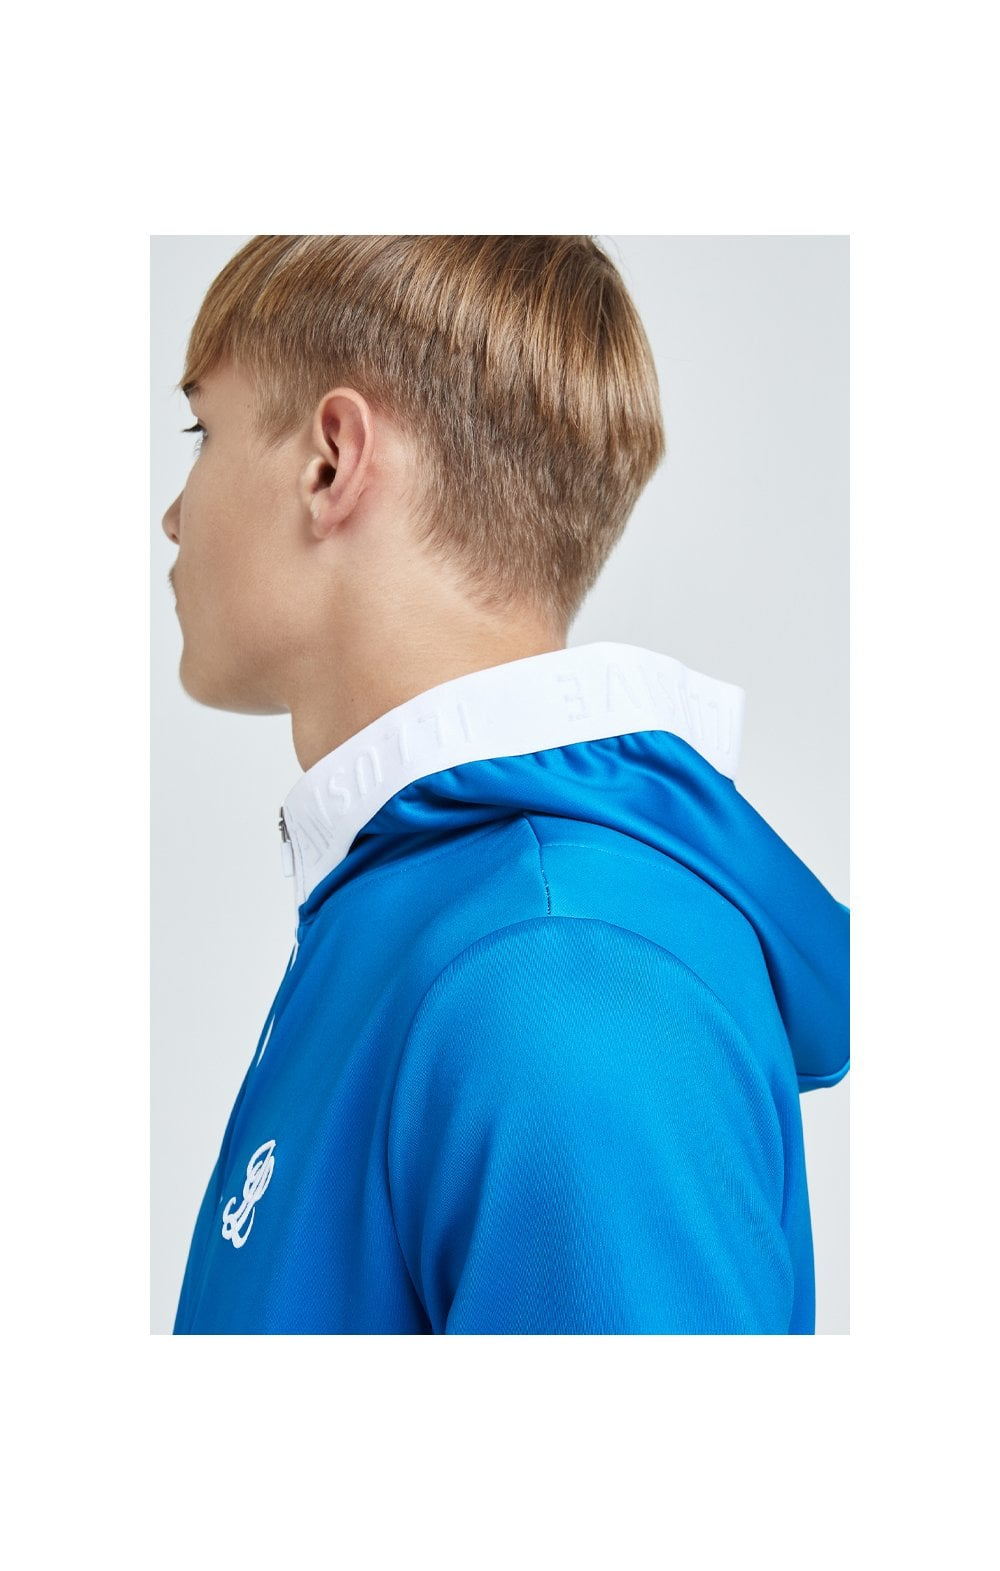 Load image into Gallery viewer, Illusive London Elevate Agility Zip Through Hoodie - Blue & White (2)